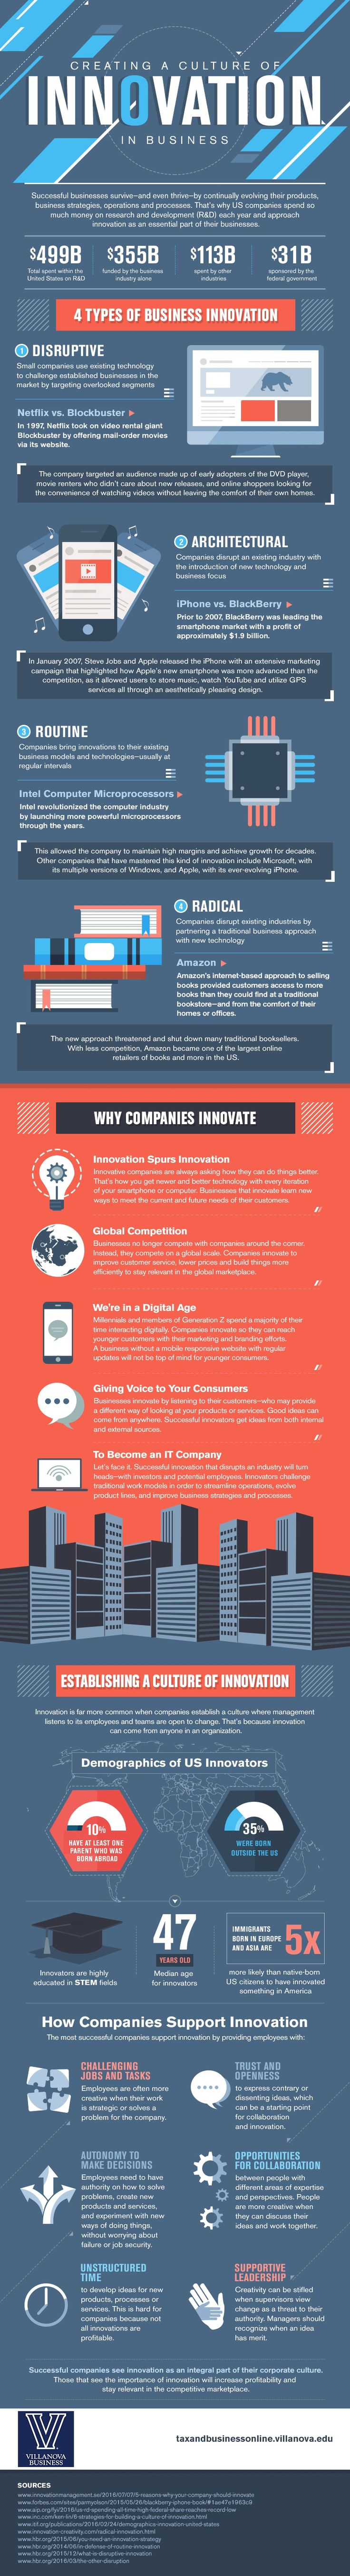 Infographic Of The Day: Creating A Culture Of Innovation In Business